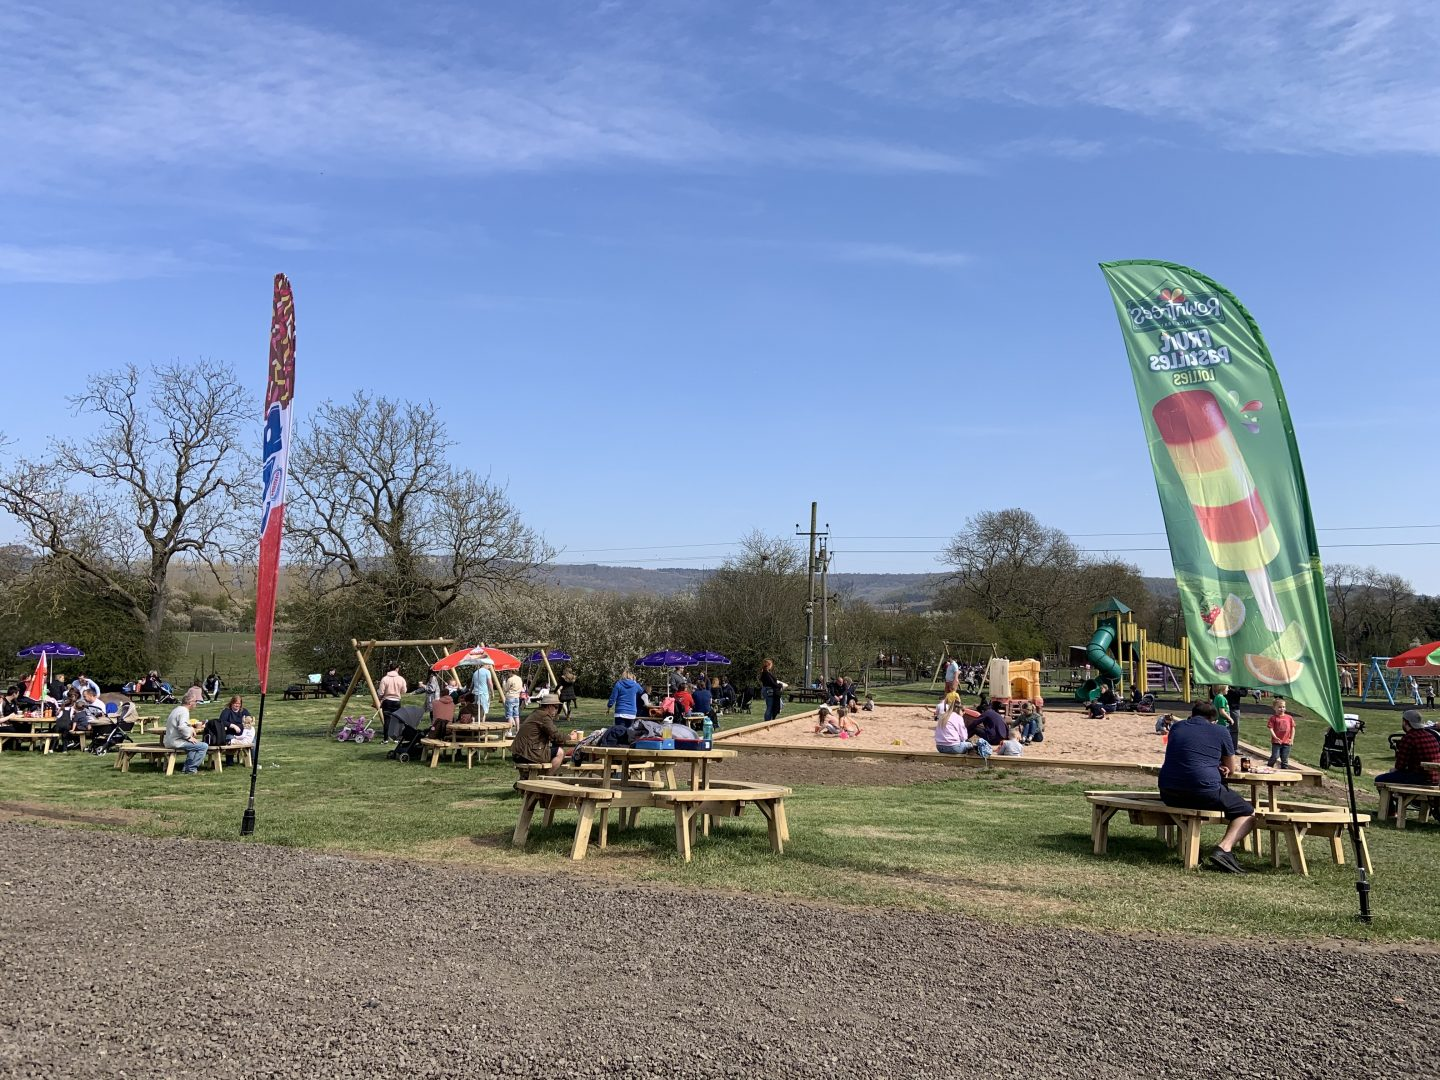 A view of the sandpit and picnic tables at Monk Park Farm